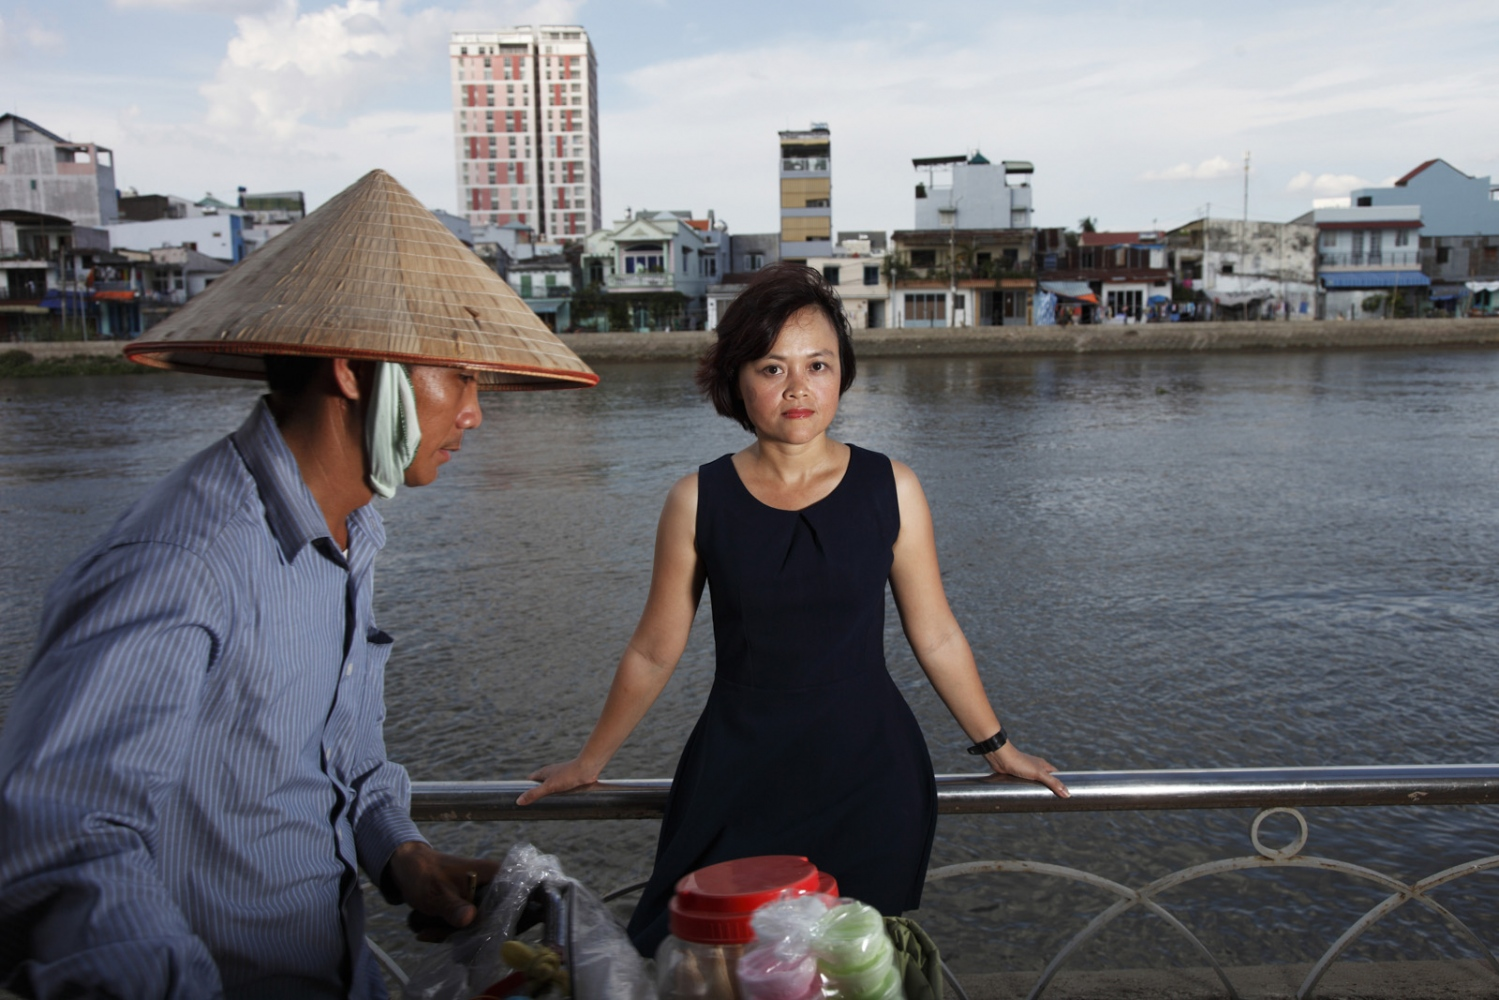 Hong Hoang stands in Ho Chi Minh City. Hong is an environmental activist responsible for coordinating 350.org activities in Southeast Asia ñ Vietnam, Laos, Cambodia, Singapore, Myanmar, and Thailand.  Ho Chi Minh - Vietnam